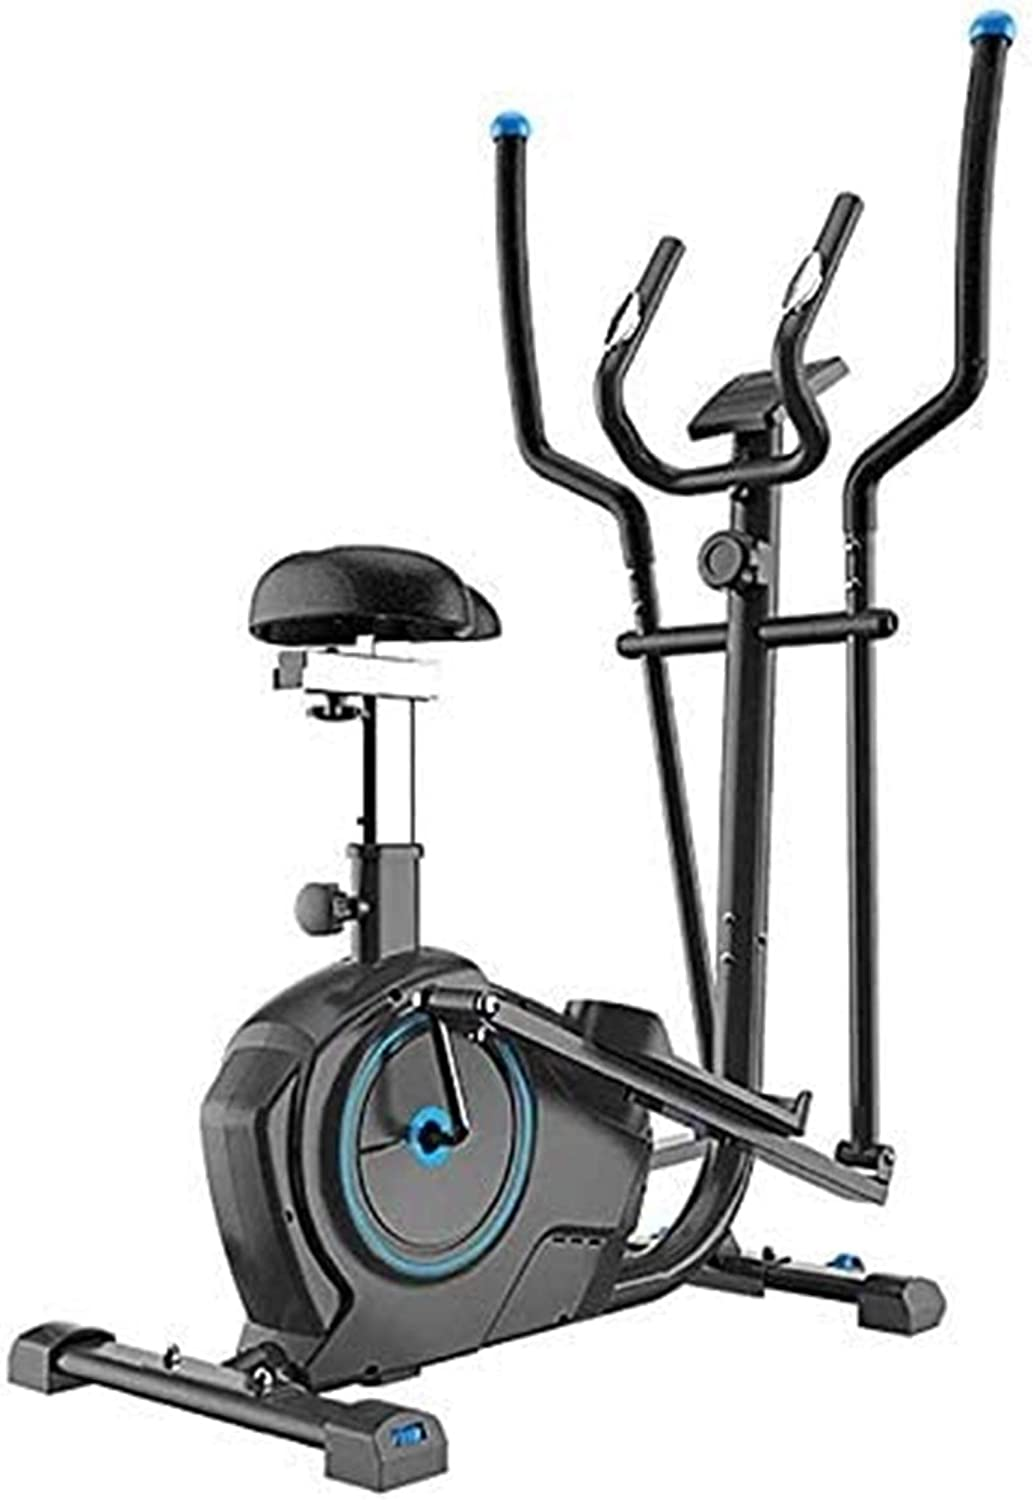 Equipment Home Gym 2 in 1 Elliptical Trainer Exercise Bike Cross, Home Office Fitness Aerobics Workout Exercise Machine Multifunction Home Aerobic (Color : Black, Size : Free Size)